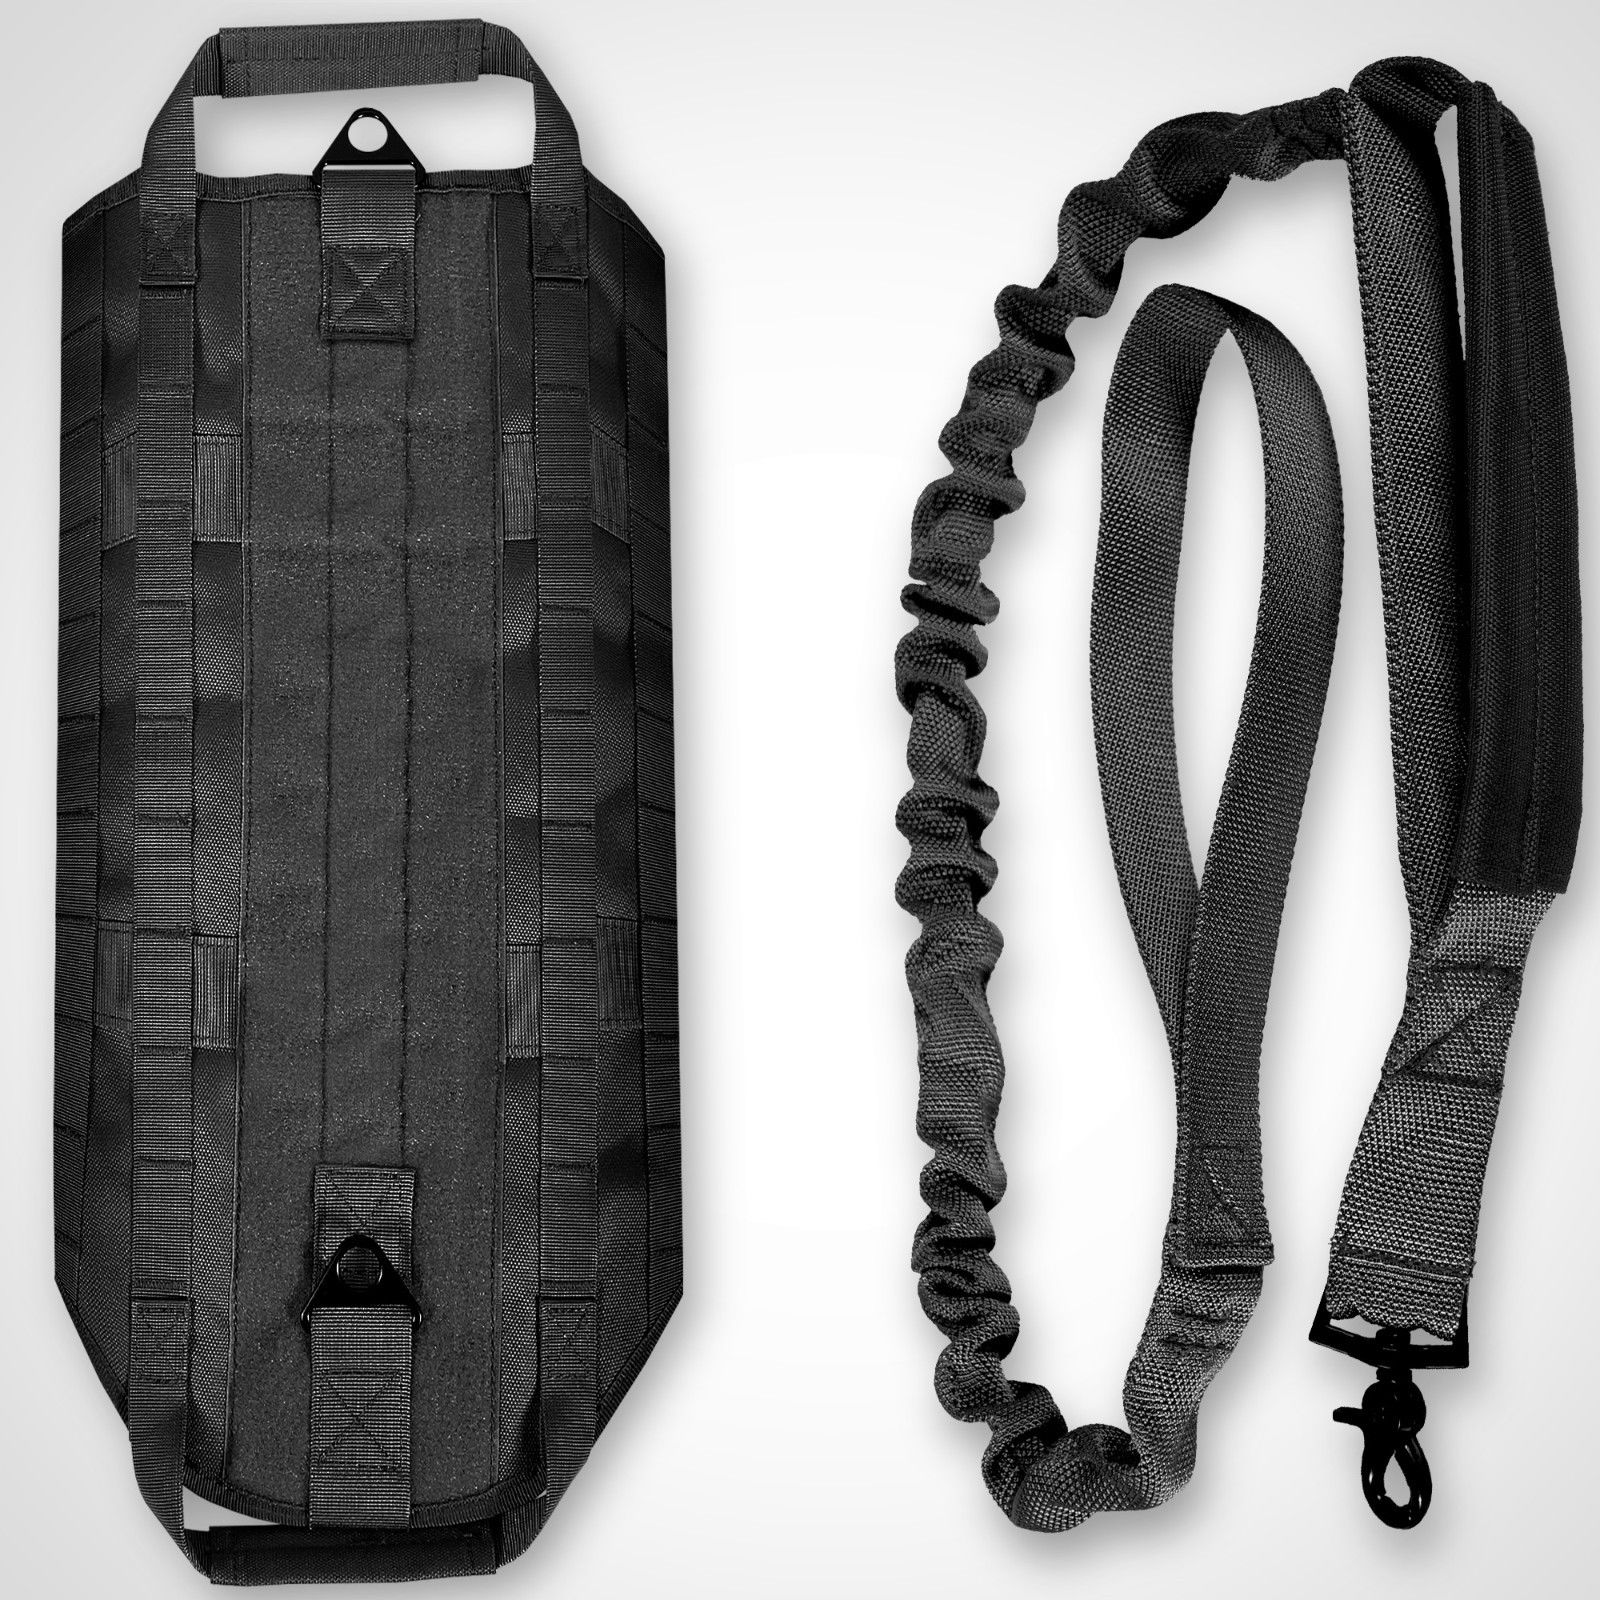 LIVABIT [ Black ] K9 Service Dog Tactical Molle Vest Harness + Matching Heavy Duty Bungee Leash Strap Large